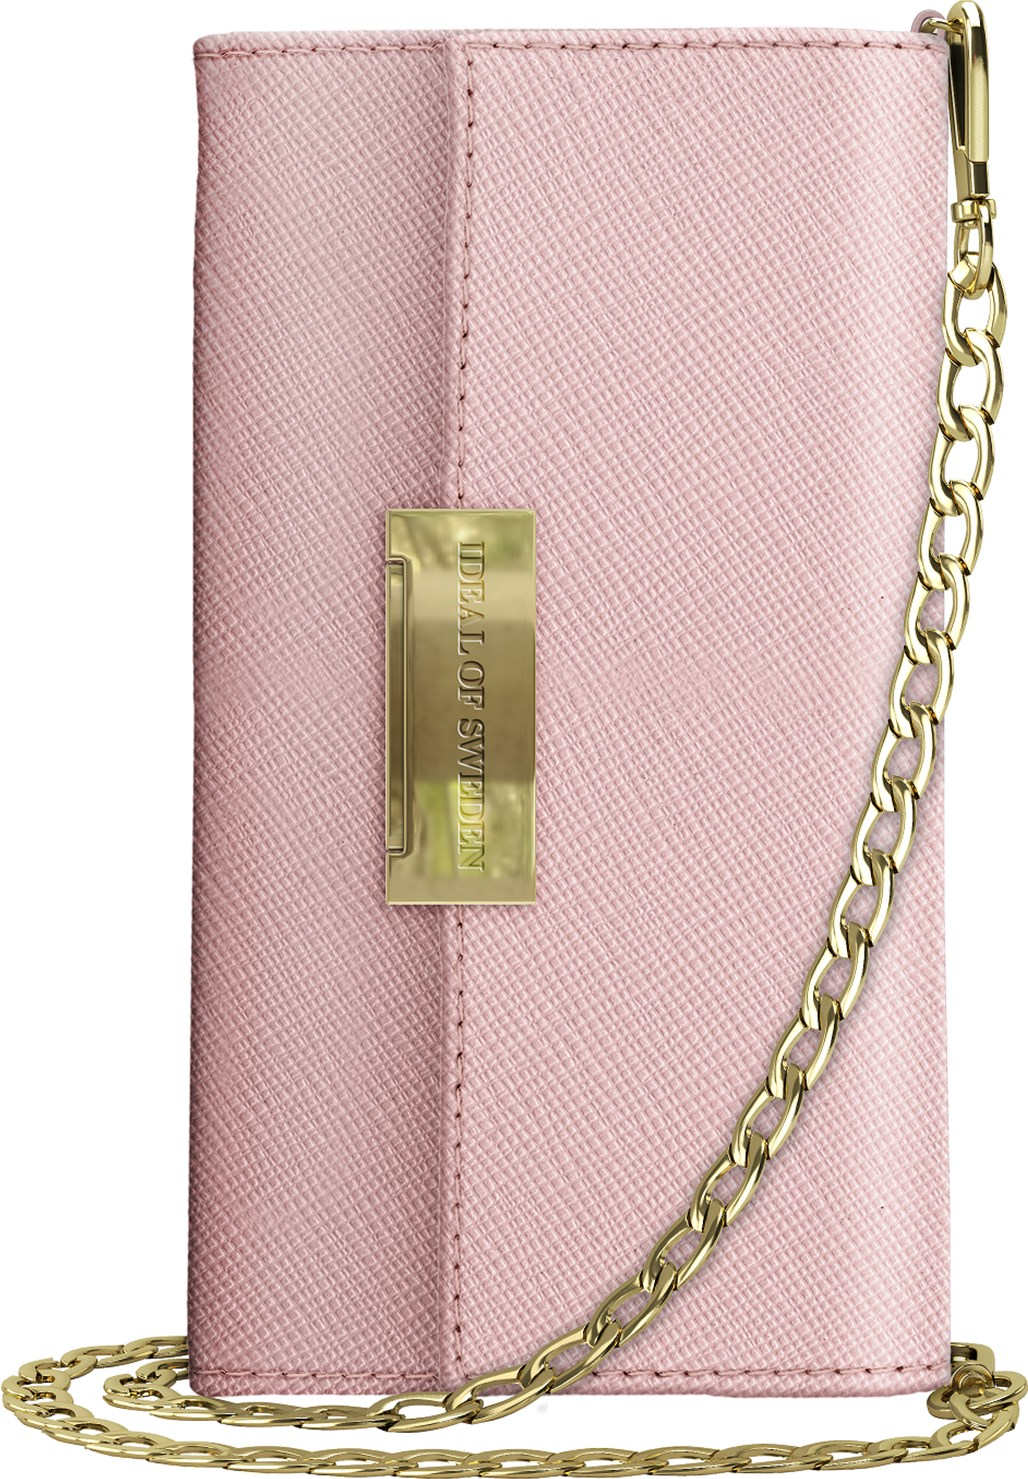 iDeal of Sweden Ideal Kensington Cross Body Clutch Iphone Xs Max Pink